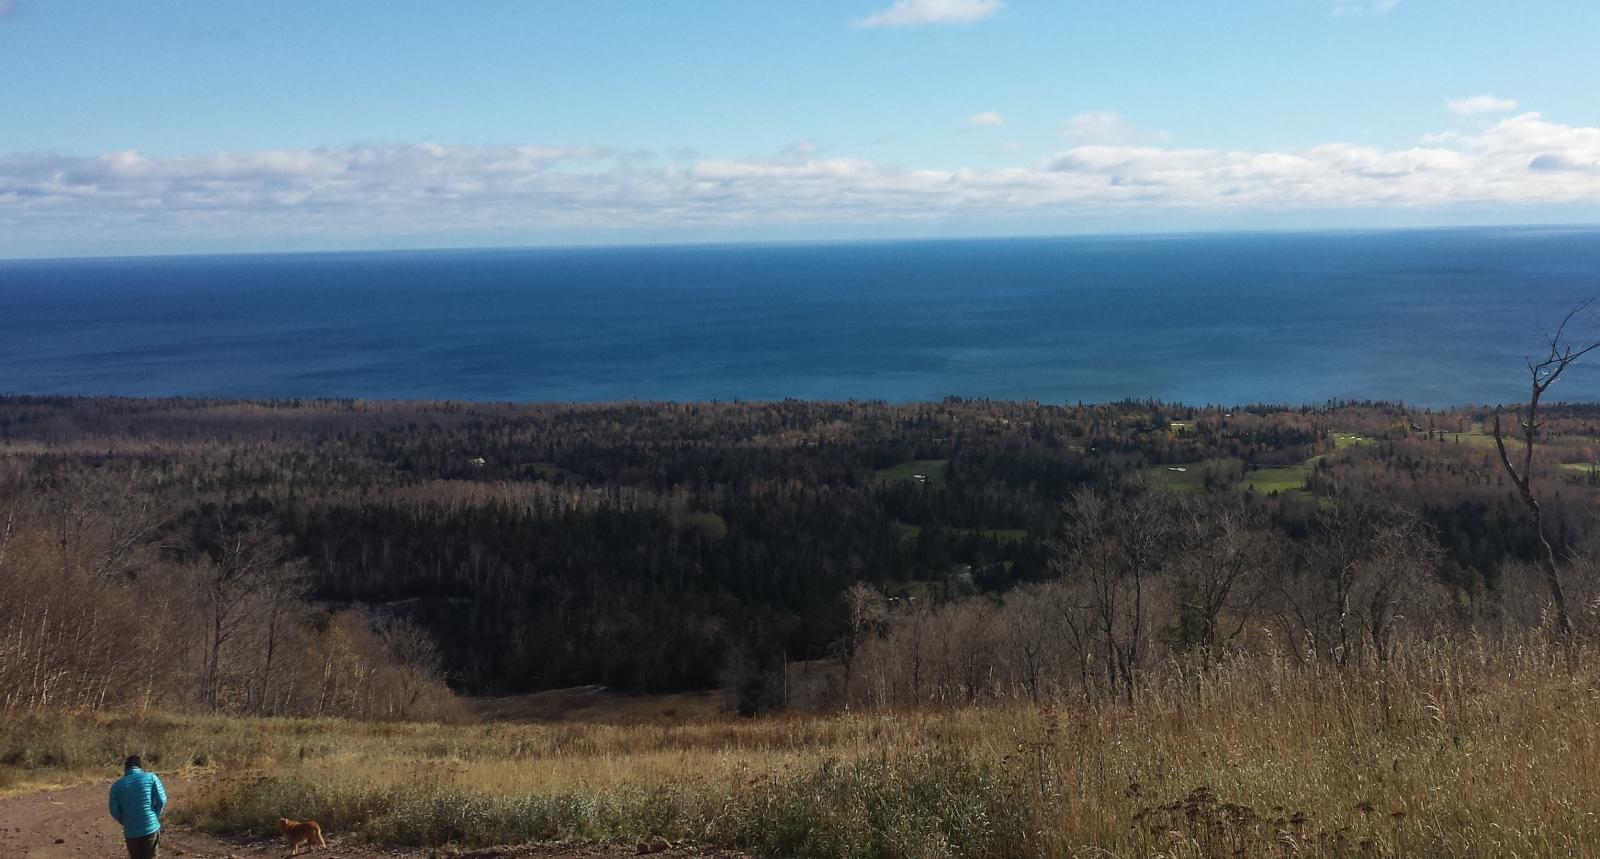 A view from the gondola's stop on Lutsen Mountains. Photo by Lianna Matt.